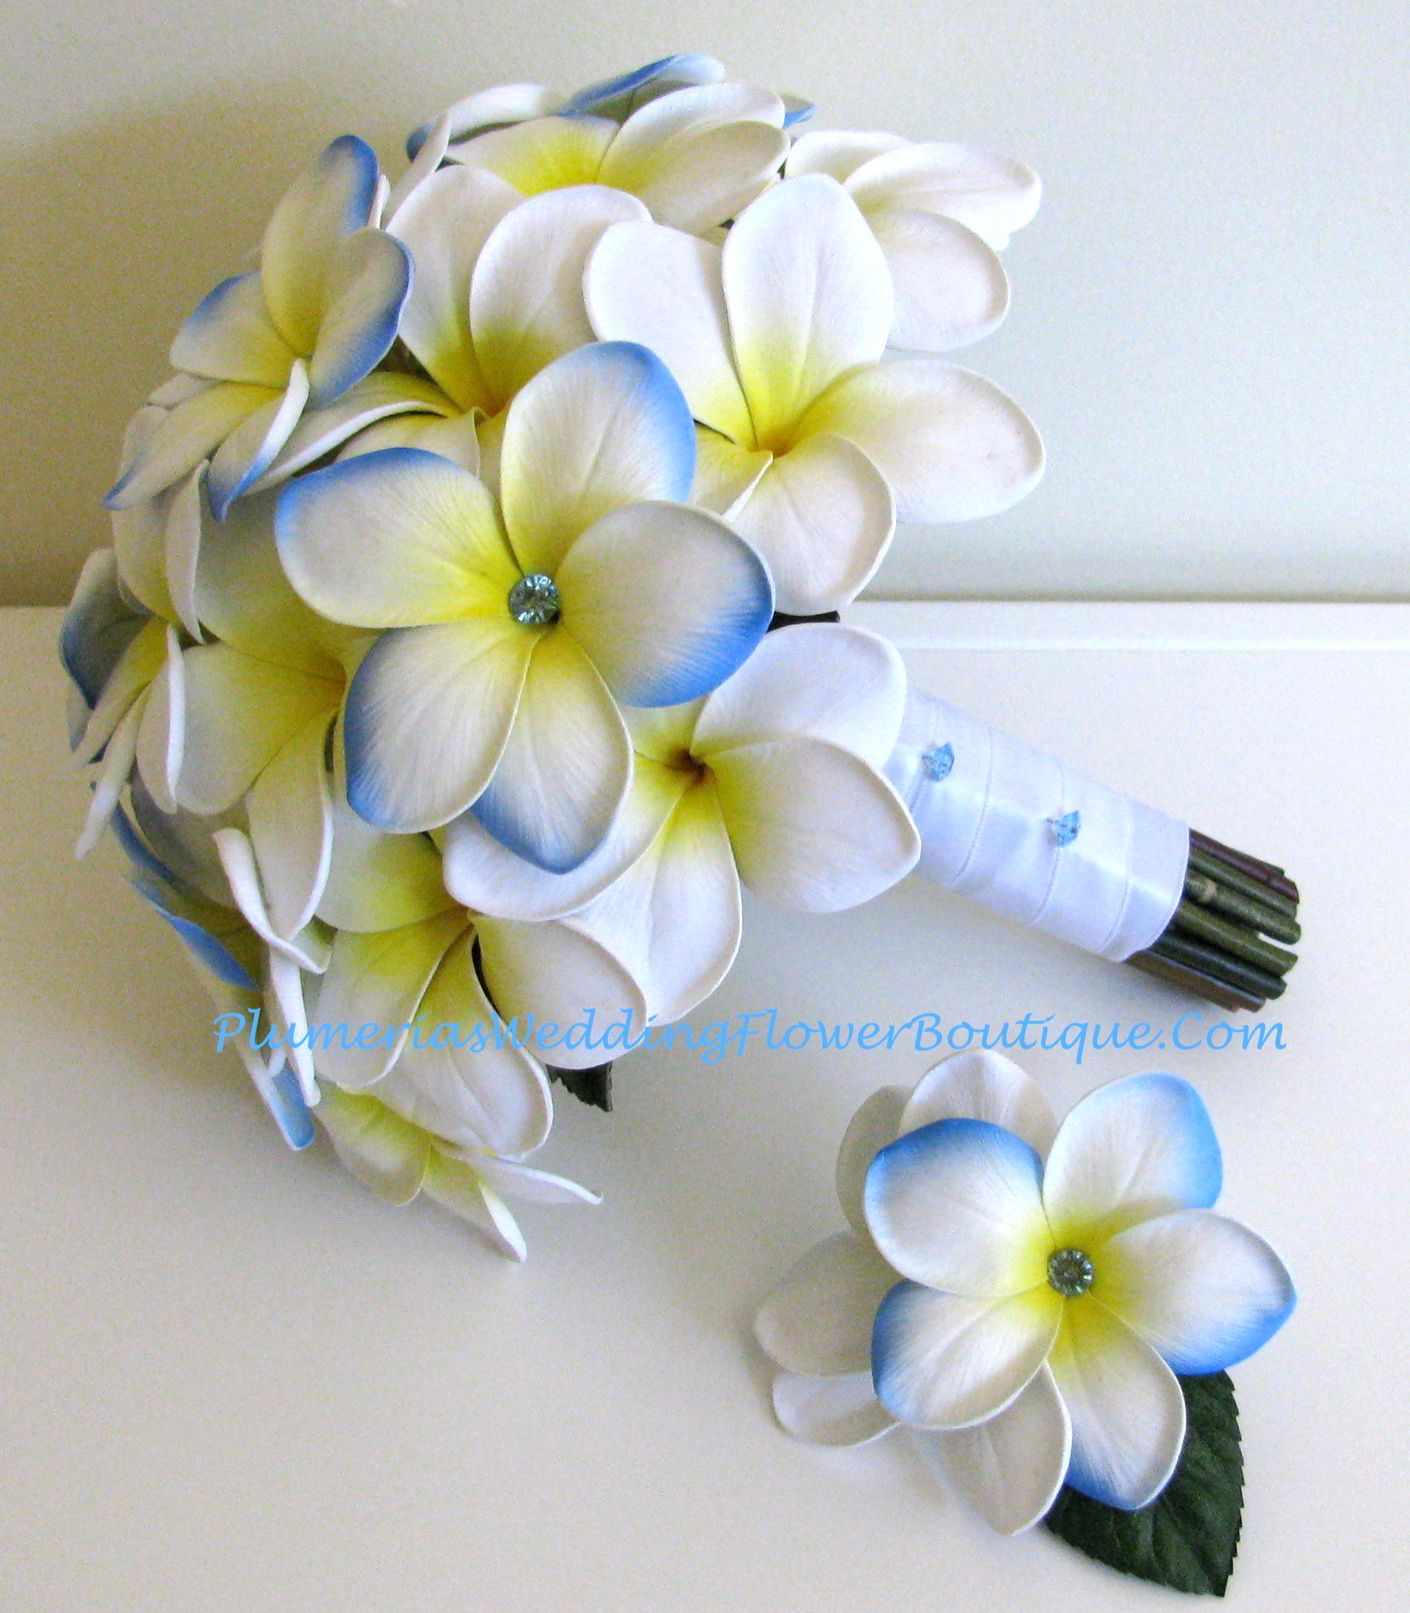 Blue Or Yellow Wedding Flowers Blue Hawaii And Classic White Plumeria Frangipani With Blue Diamante Hibiscus Wedding Frangipani Wedding Wedding Flower Photos